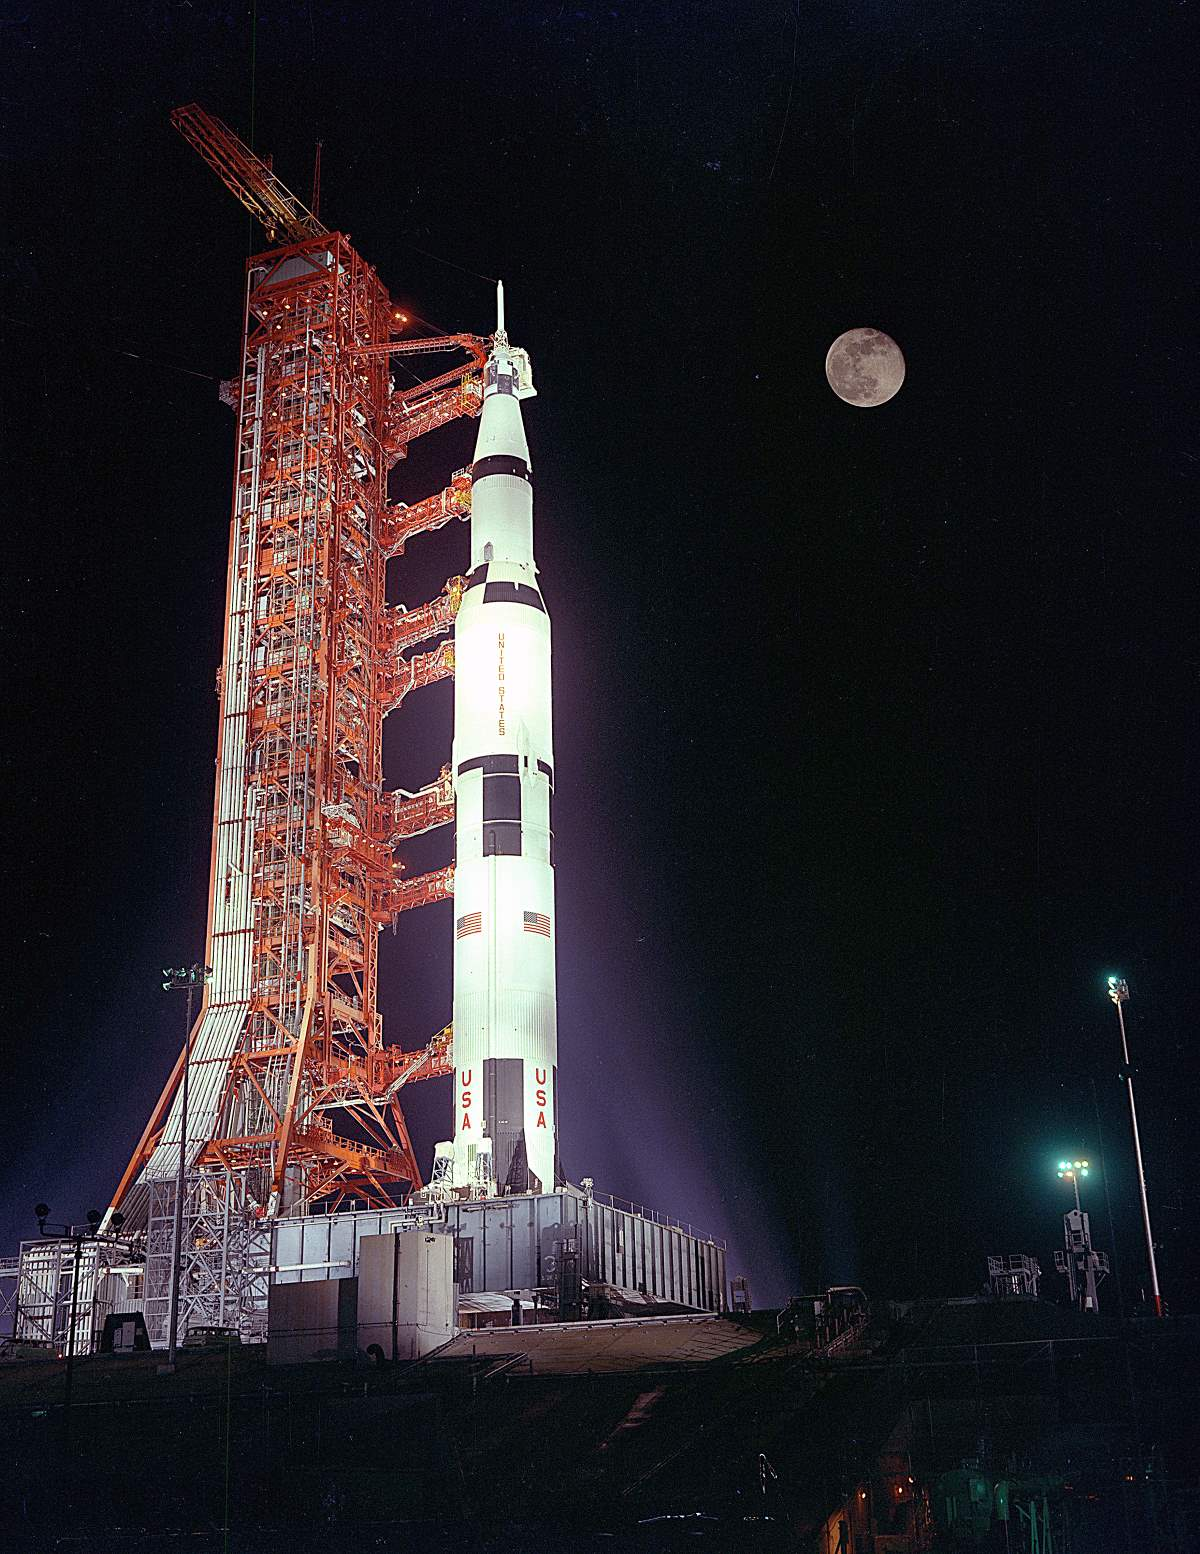 Apollo 17 during the prelaunch, with the Moon is in the background